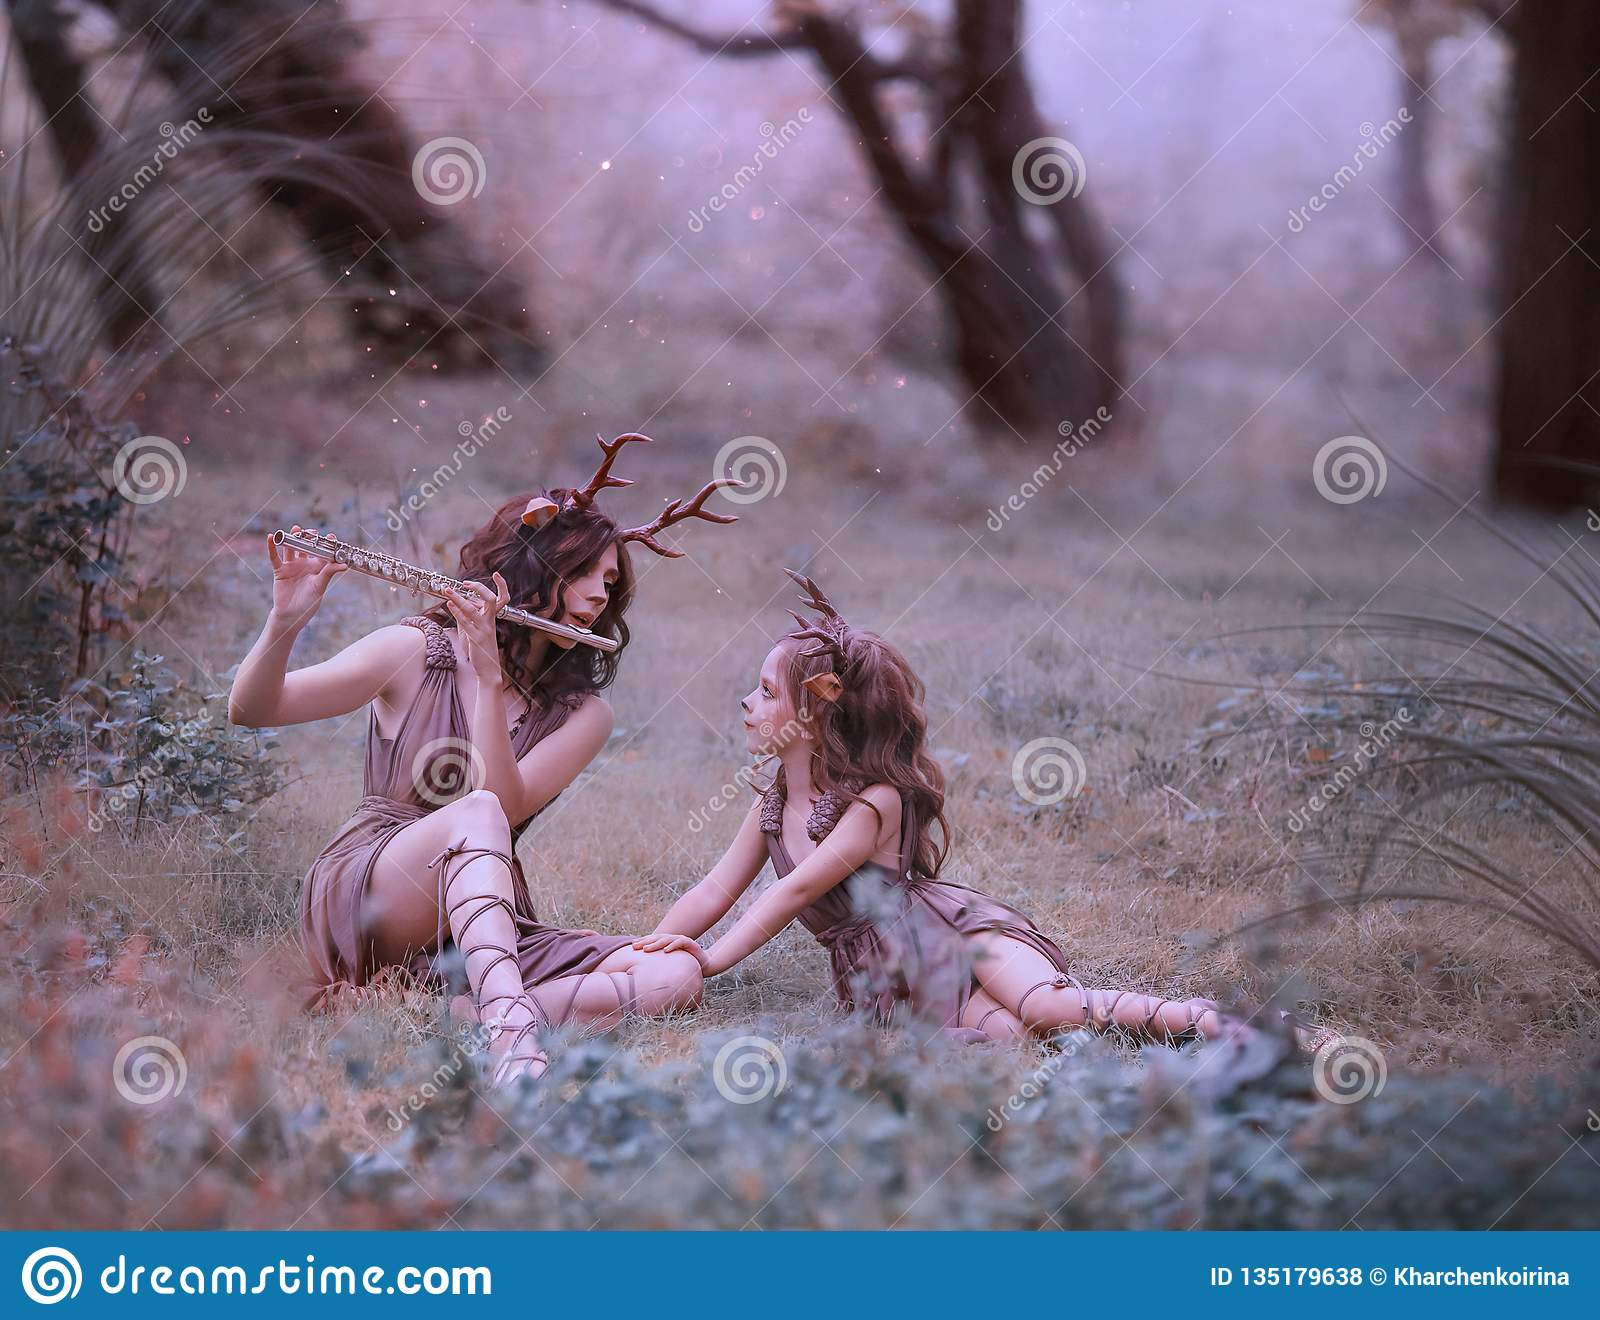 Creative fabulous family shooting, faun mom plays lullaby on flute for her child, fairytale characters deer in long